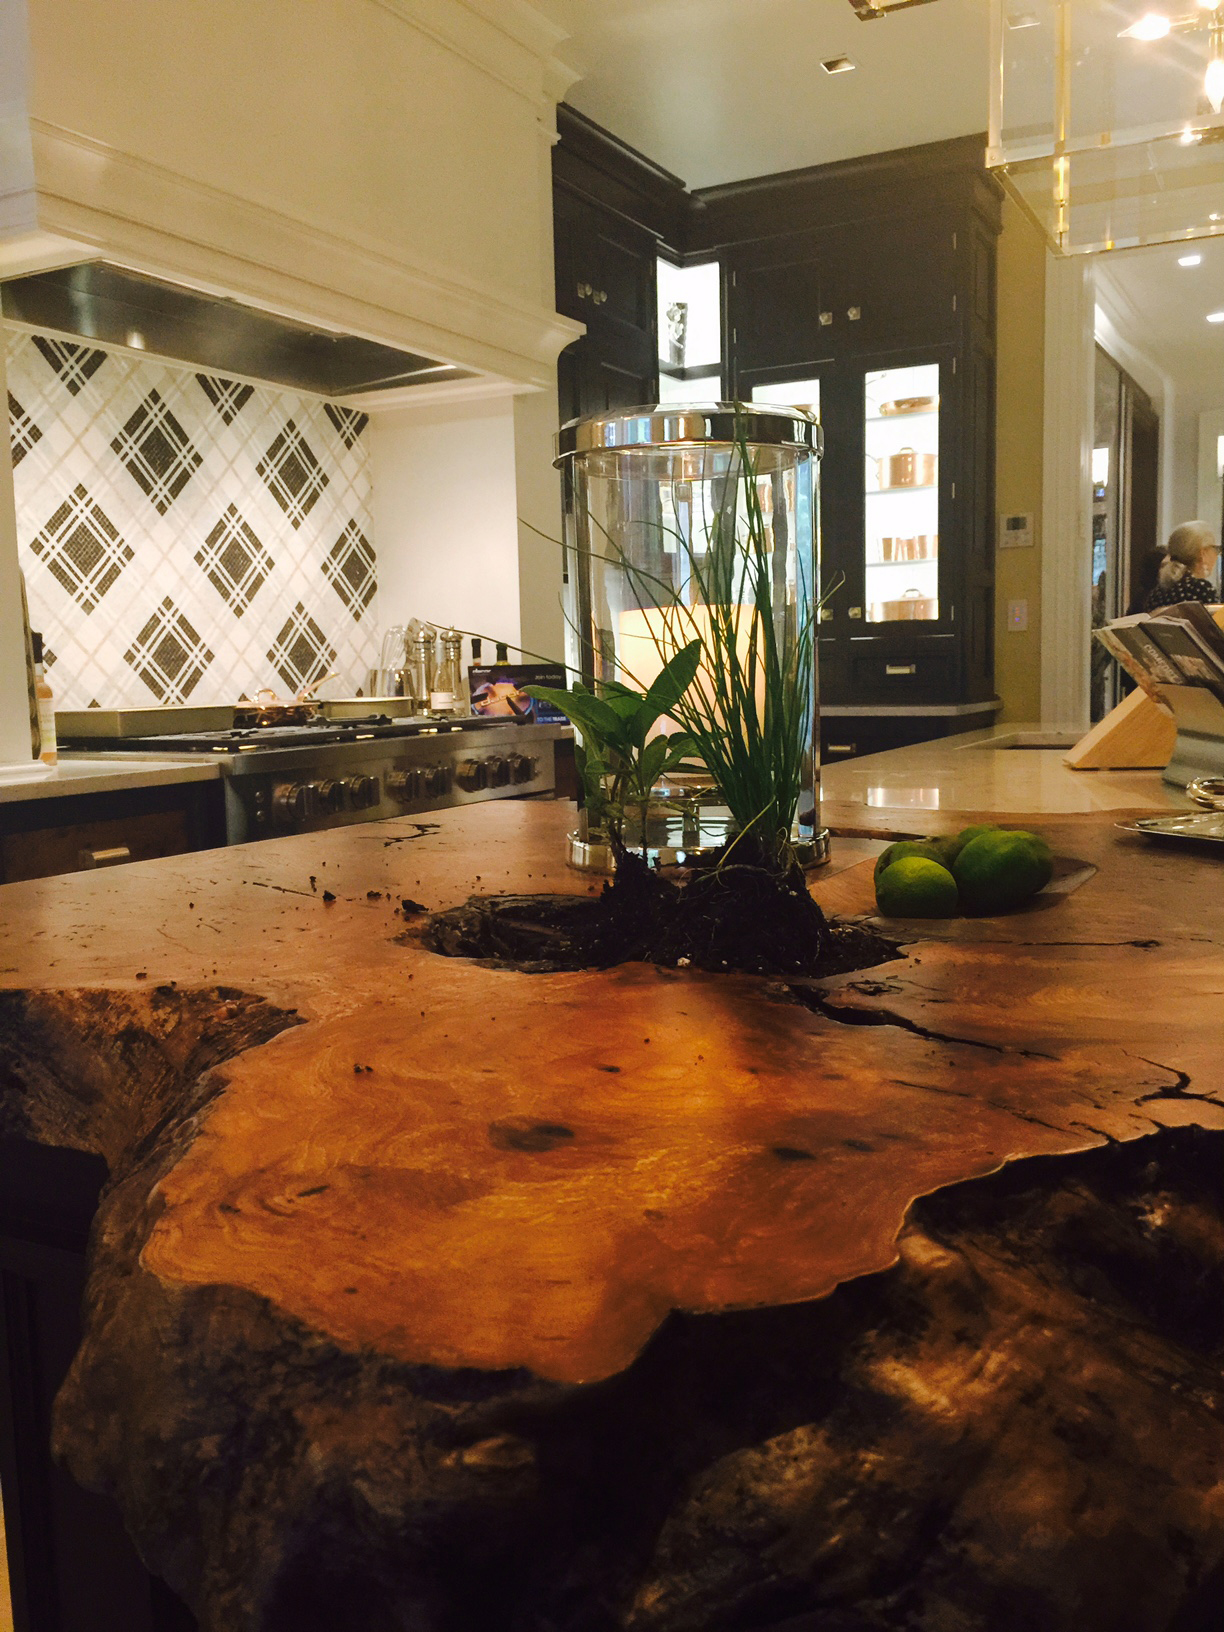 Herb garden in deep crevice of Live Edge countertop in 2015 Kips Bay Decorator Show House